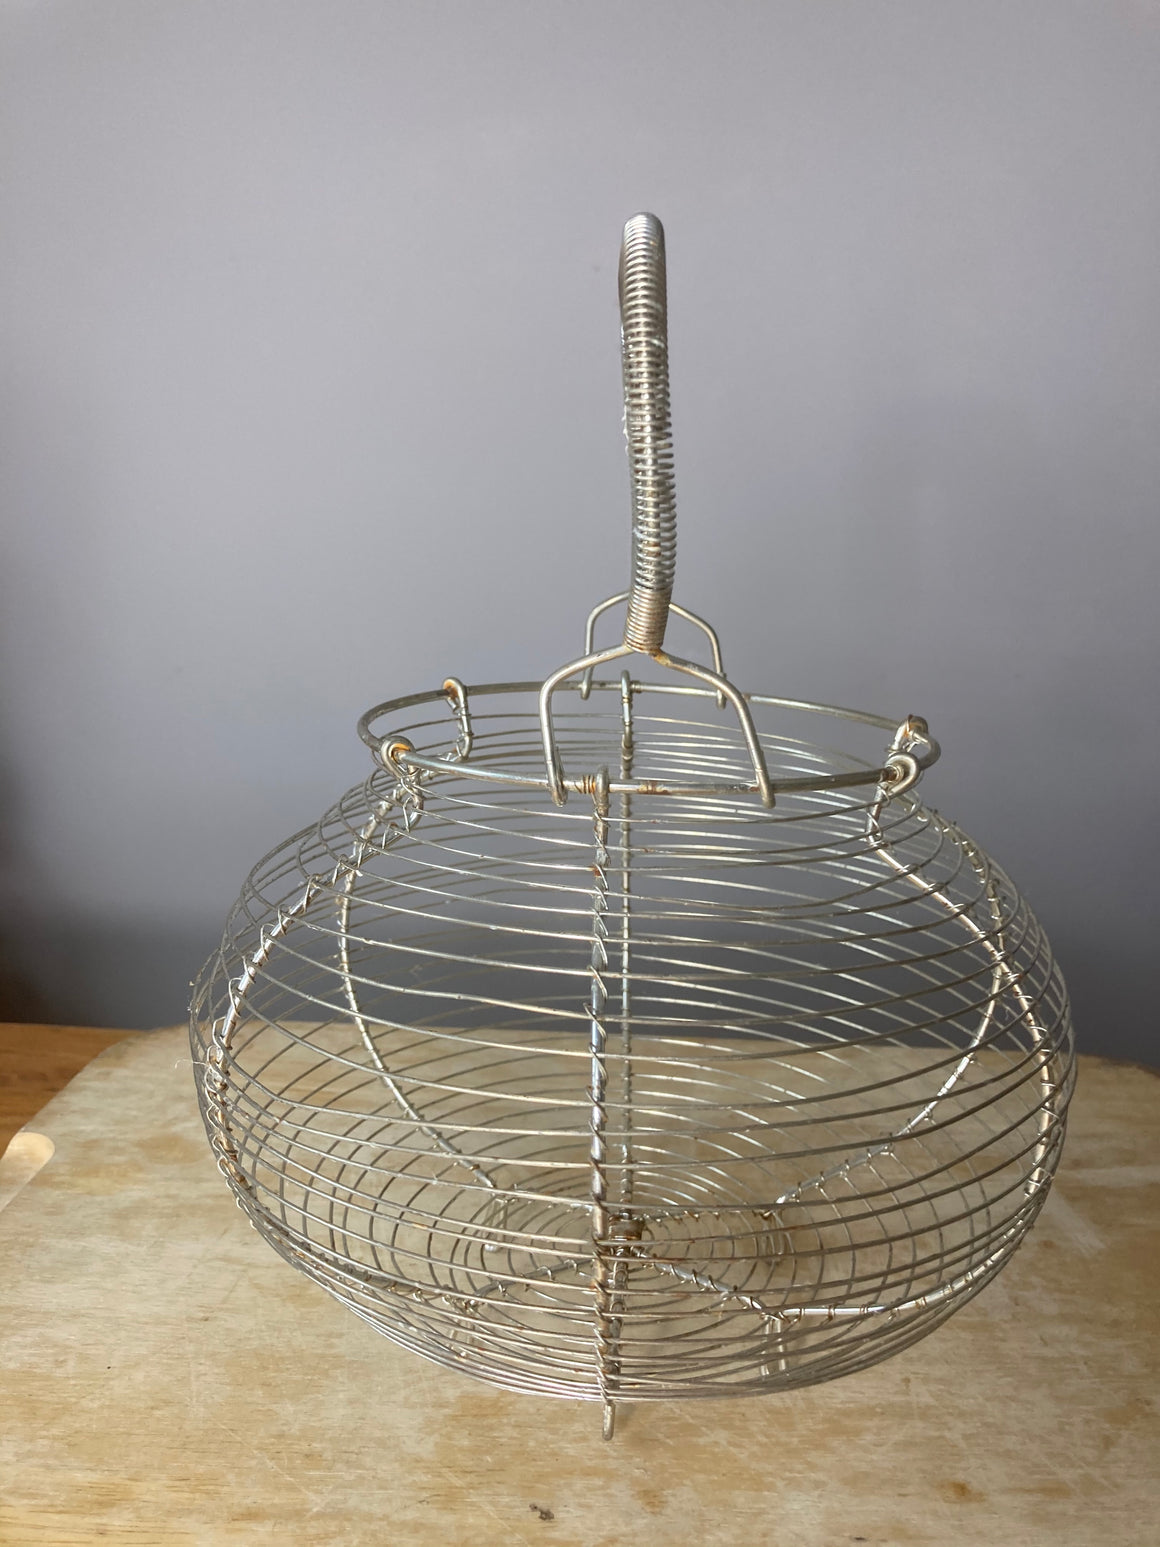 Round egg basket